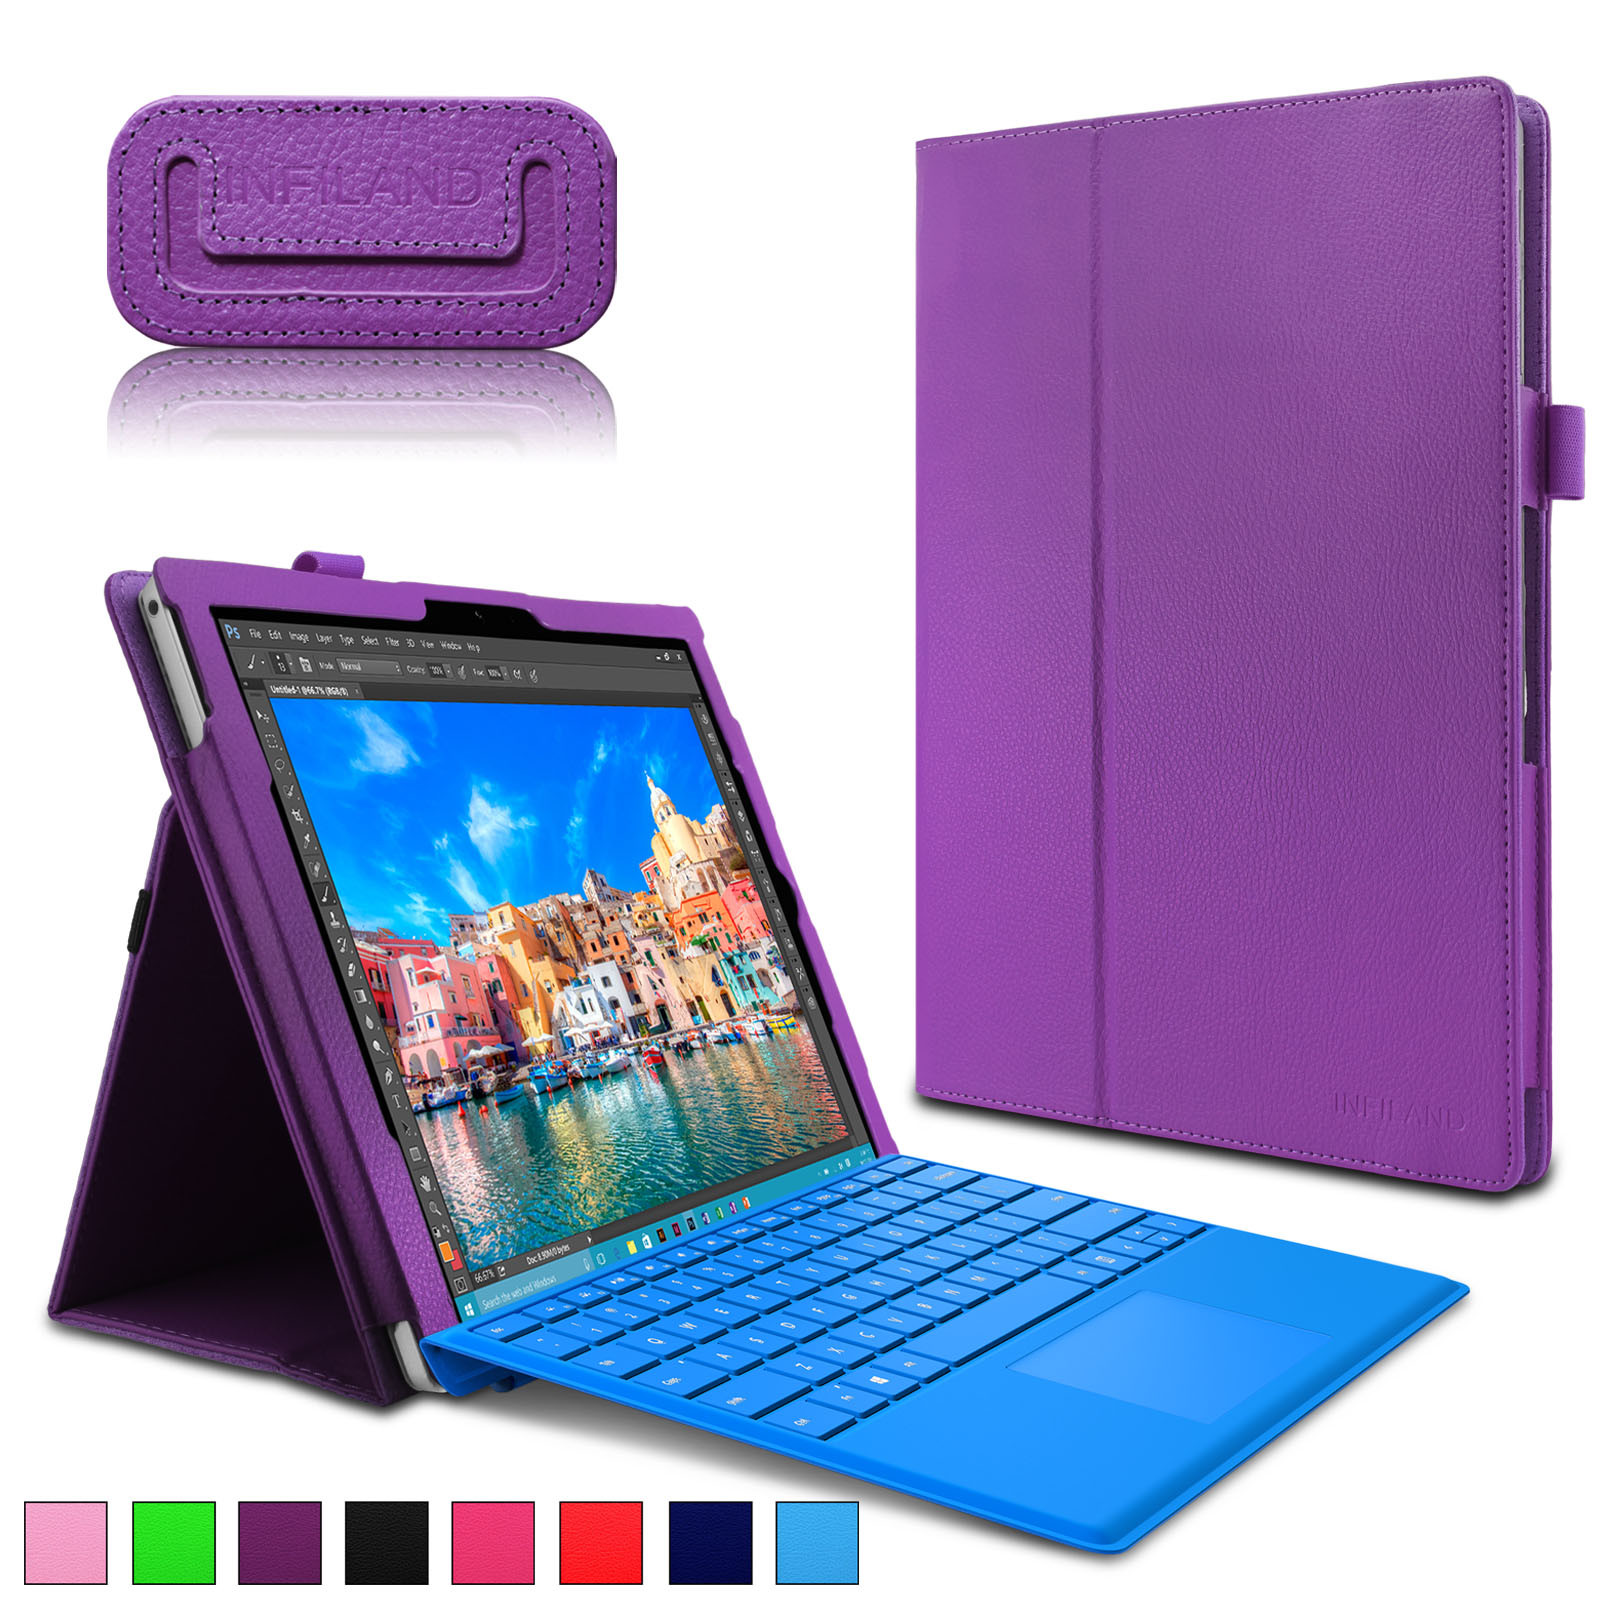 Infiland Folio PU Leather Cover Case For Microsoft Surface Pro 4 12.3-inch Tablet, Purple